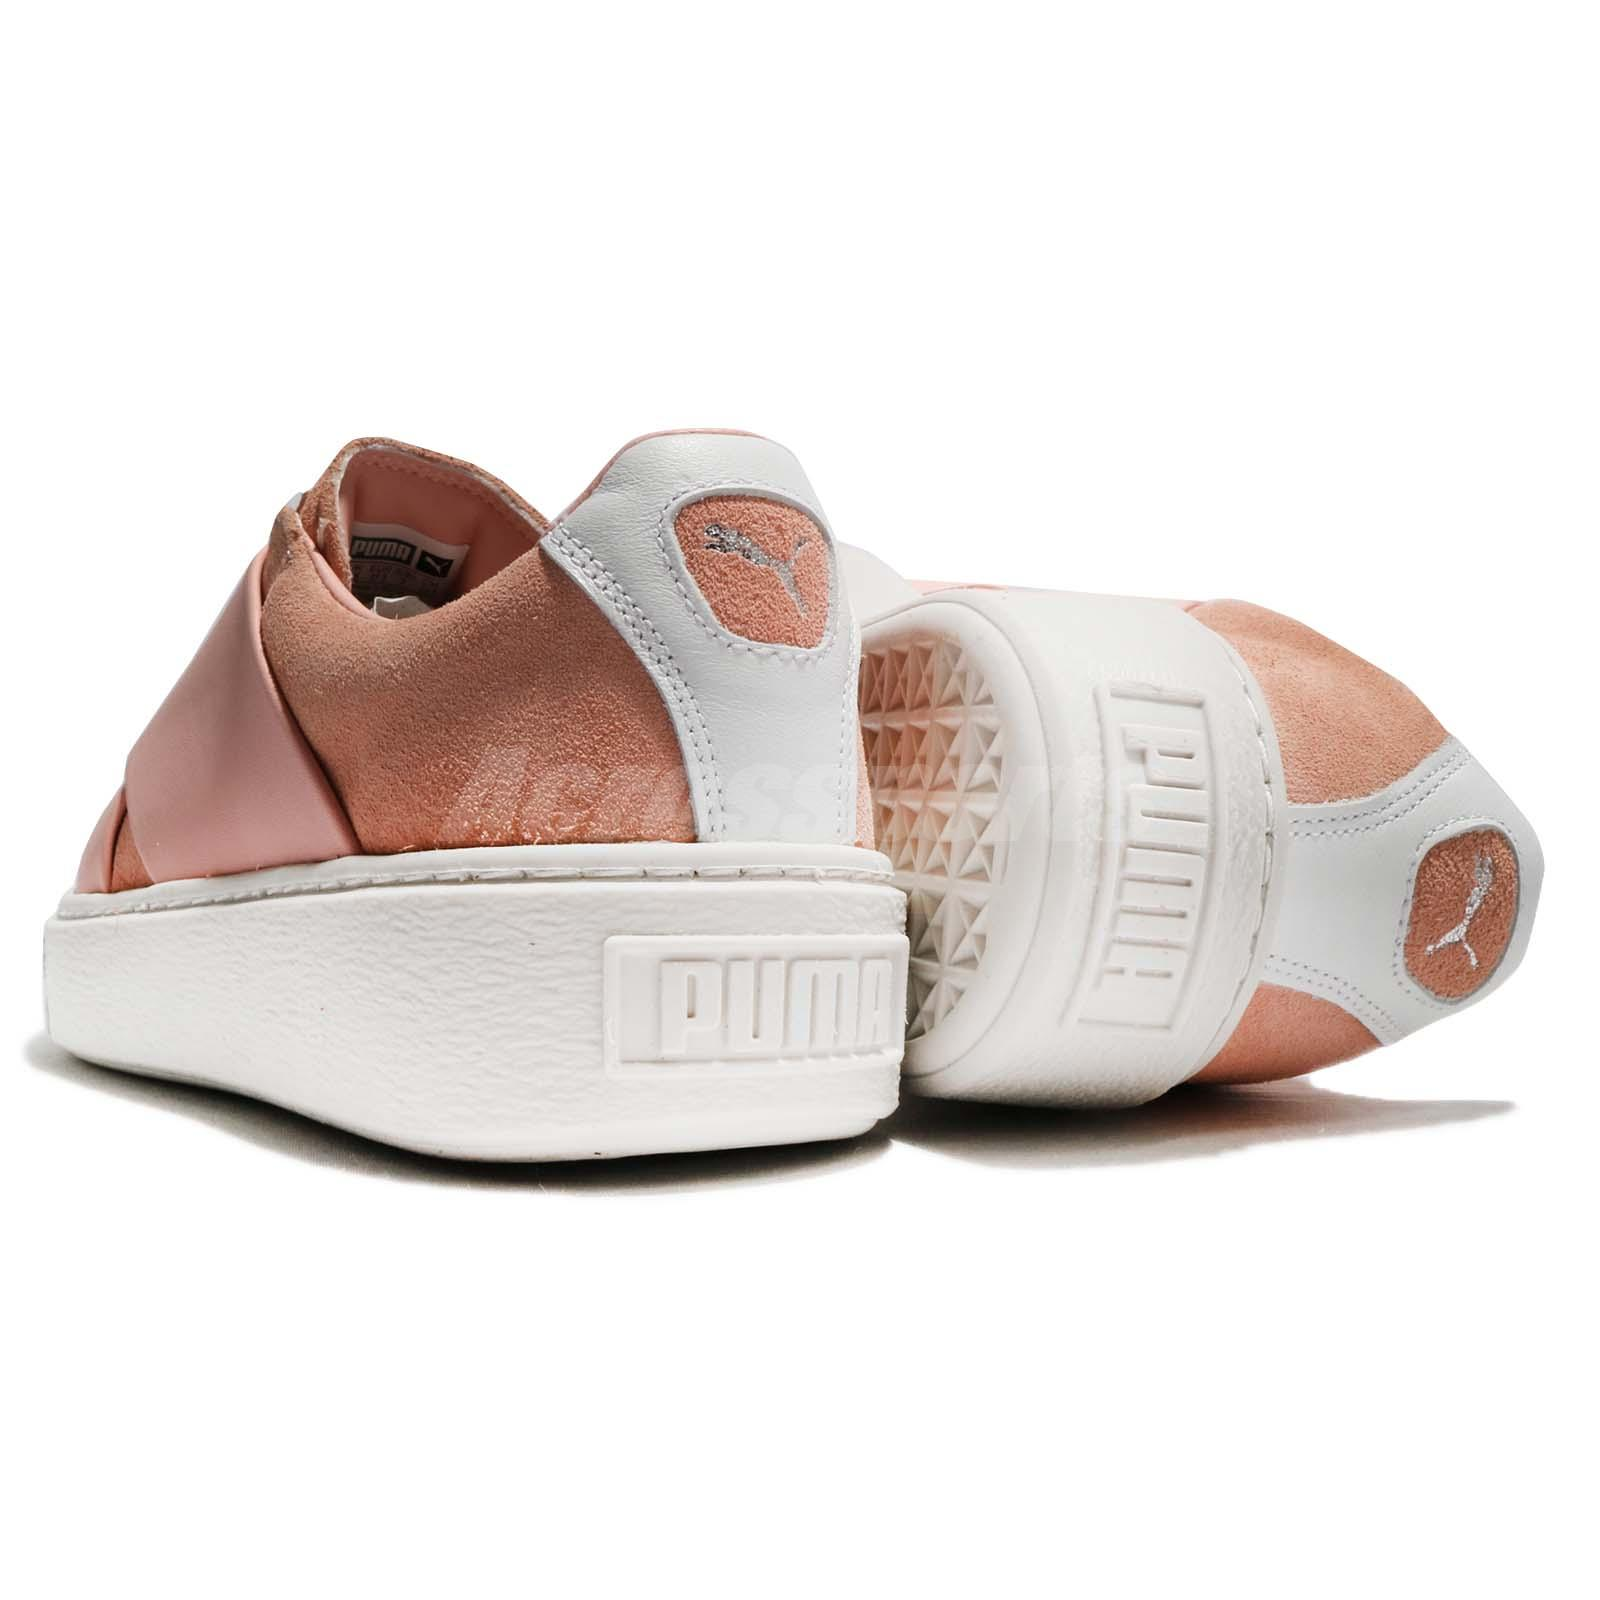 372b45850ad Puma Platform X Wns Peach Beige Pink White Women Shoes Sneakers ...